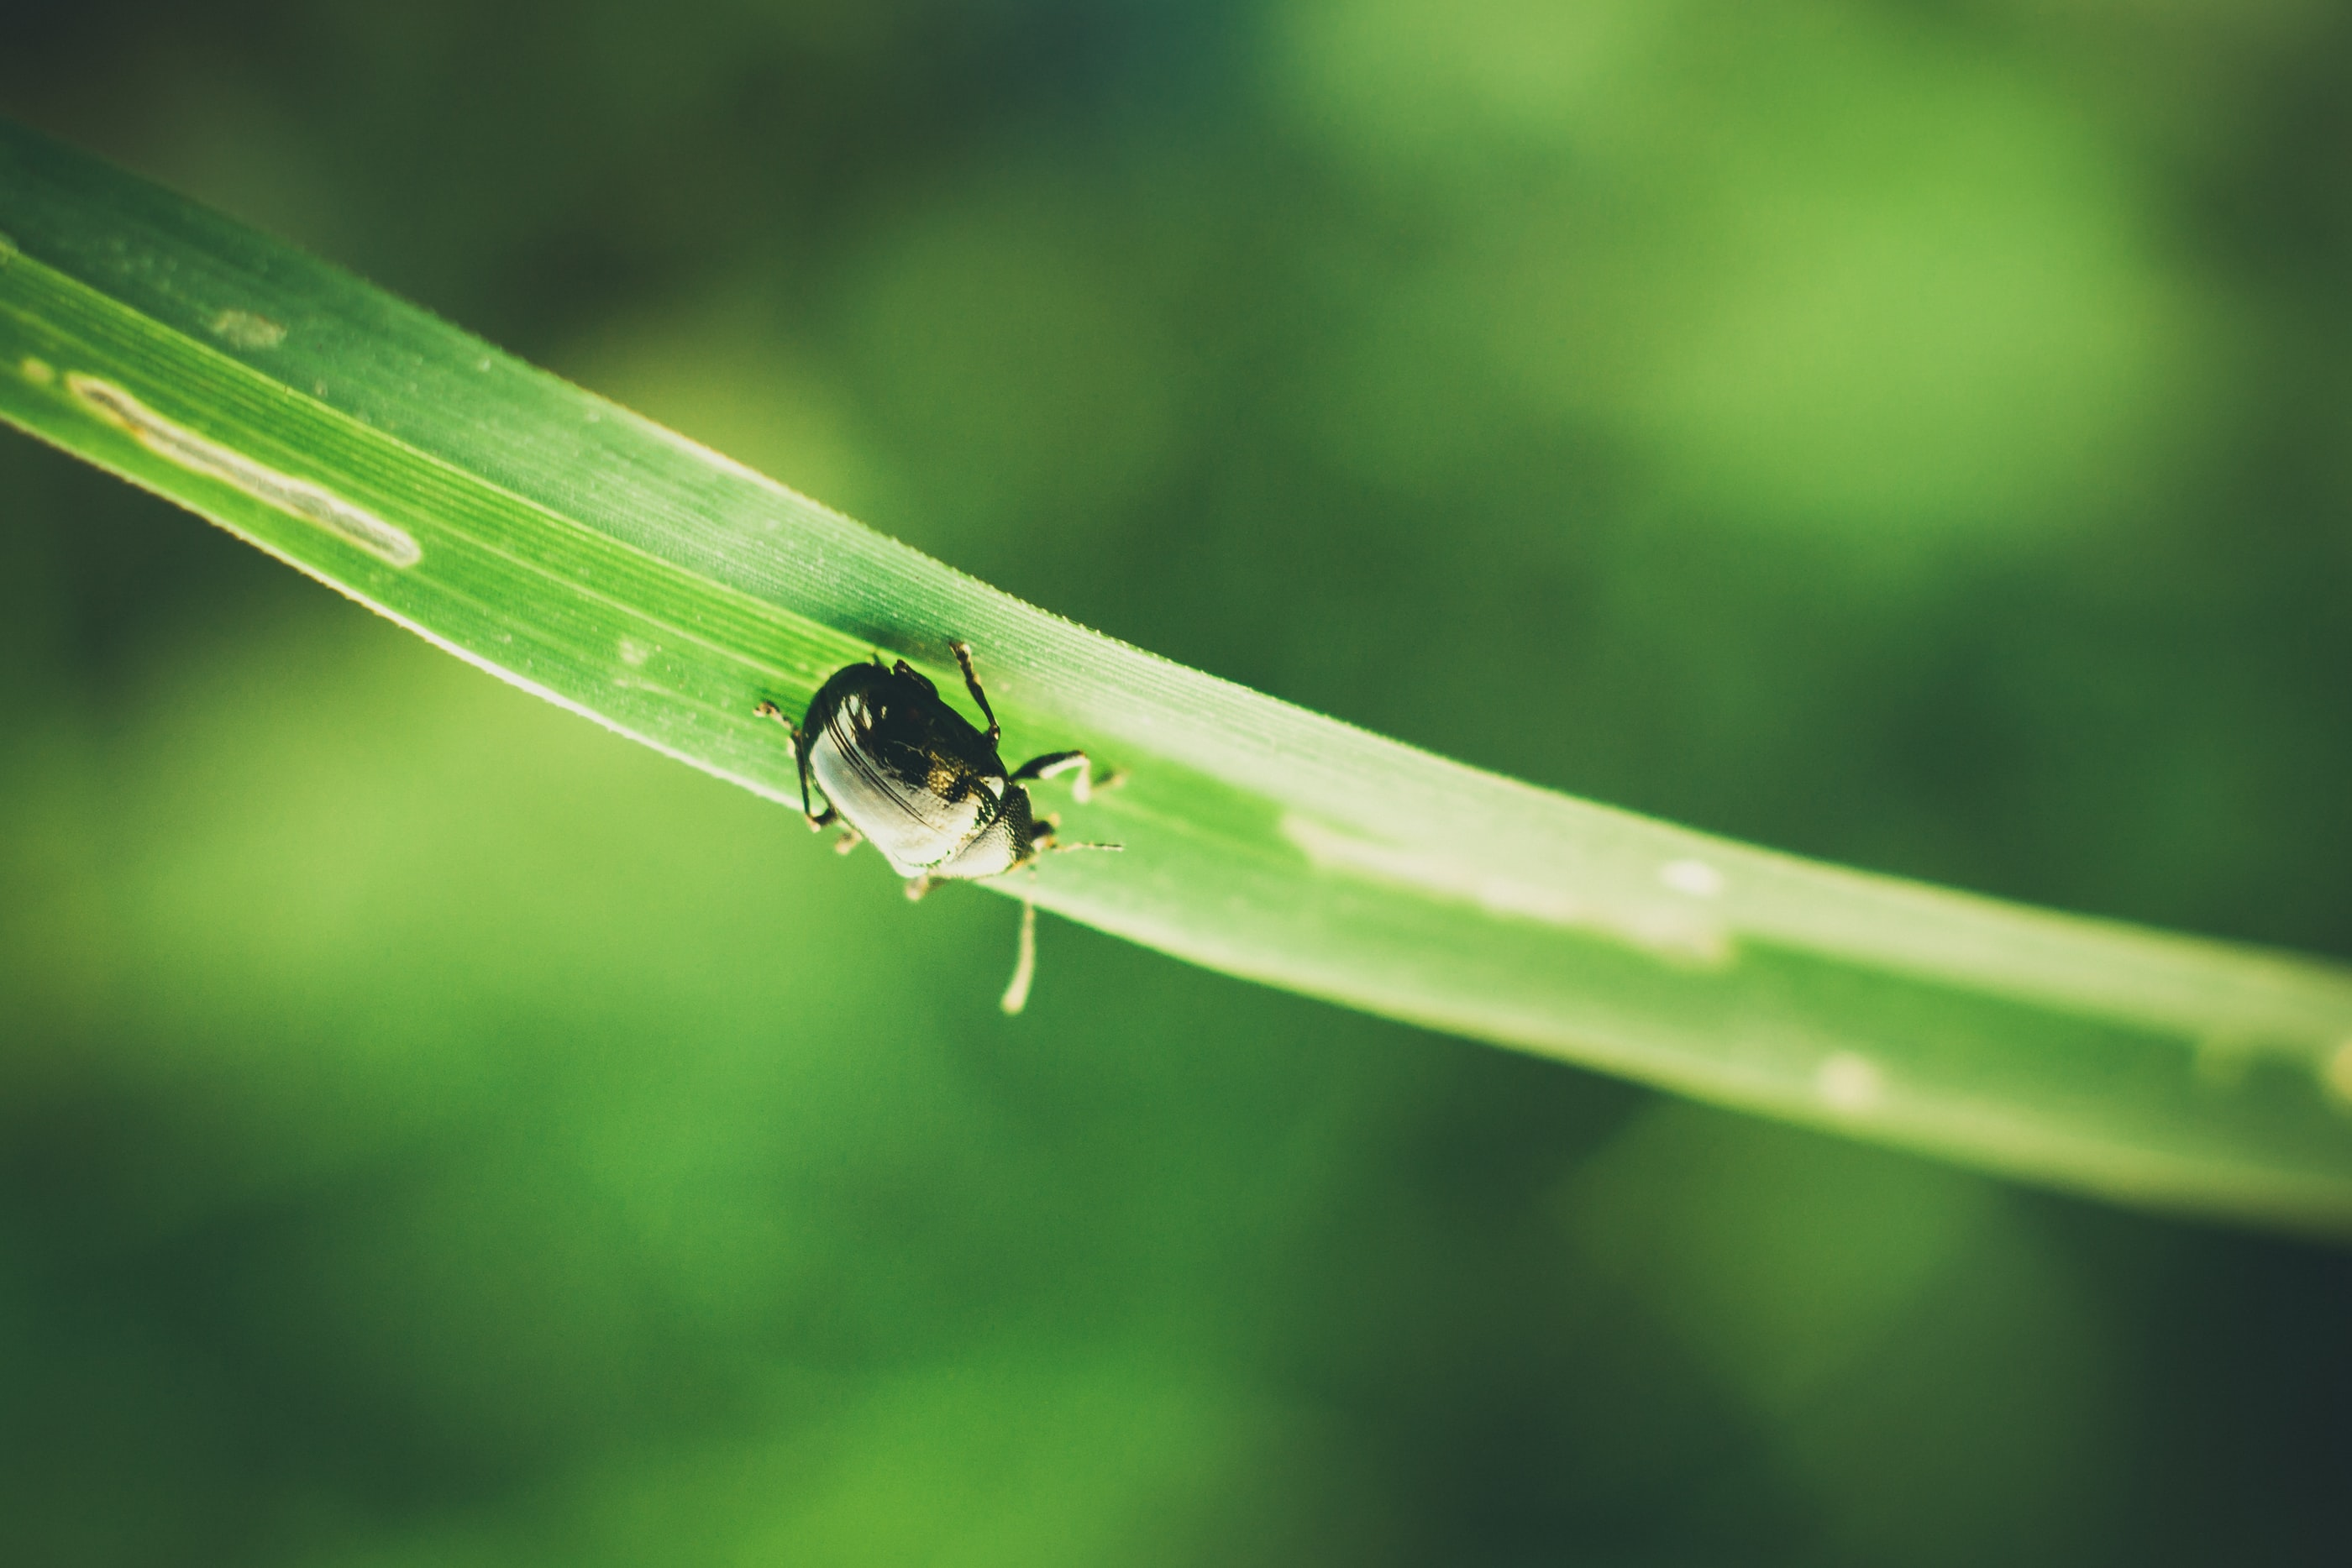 selective focus photography of green beetle on leaf